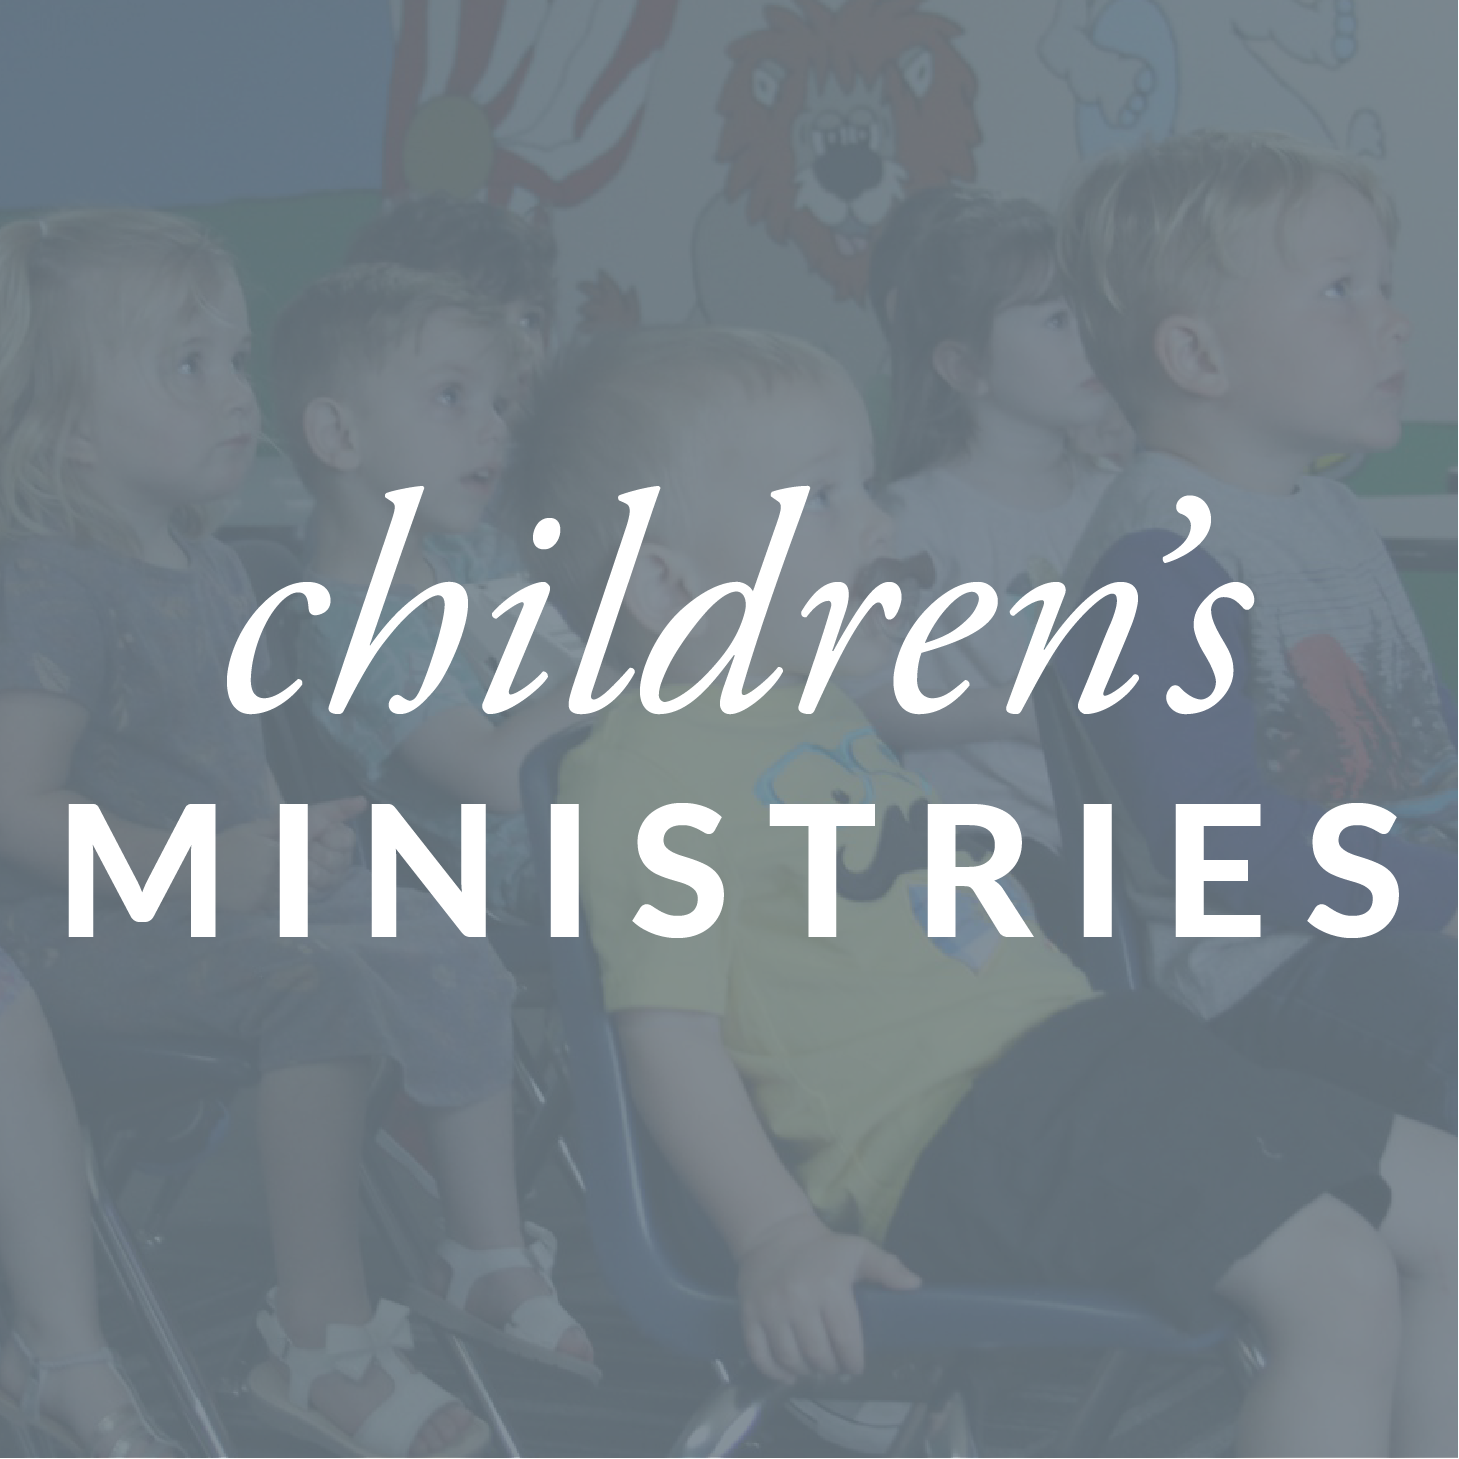 ministries-04.png